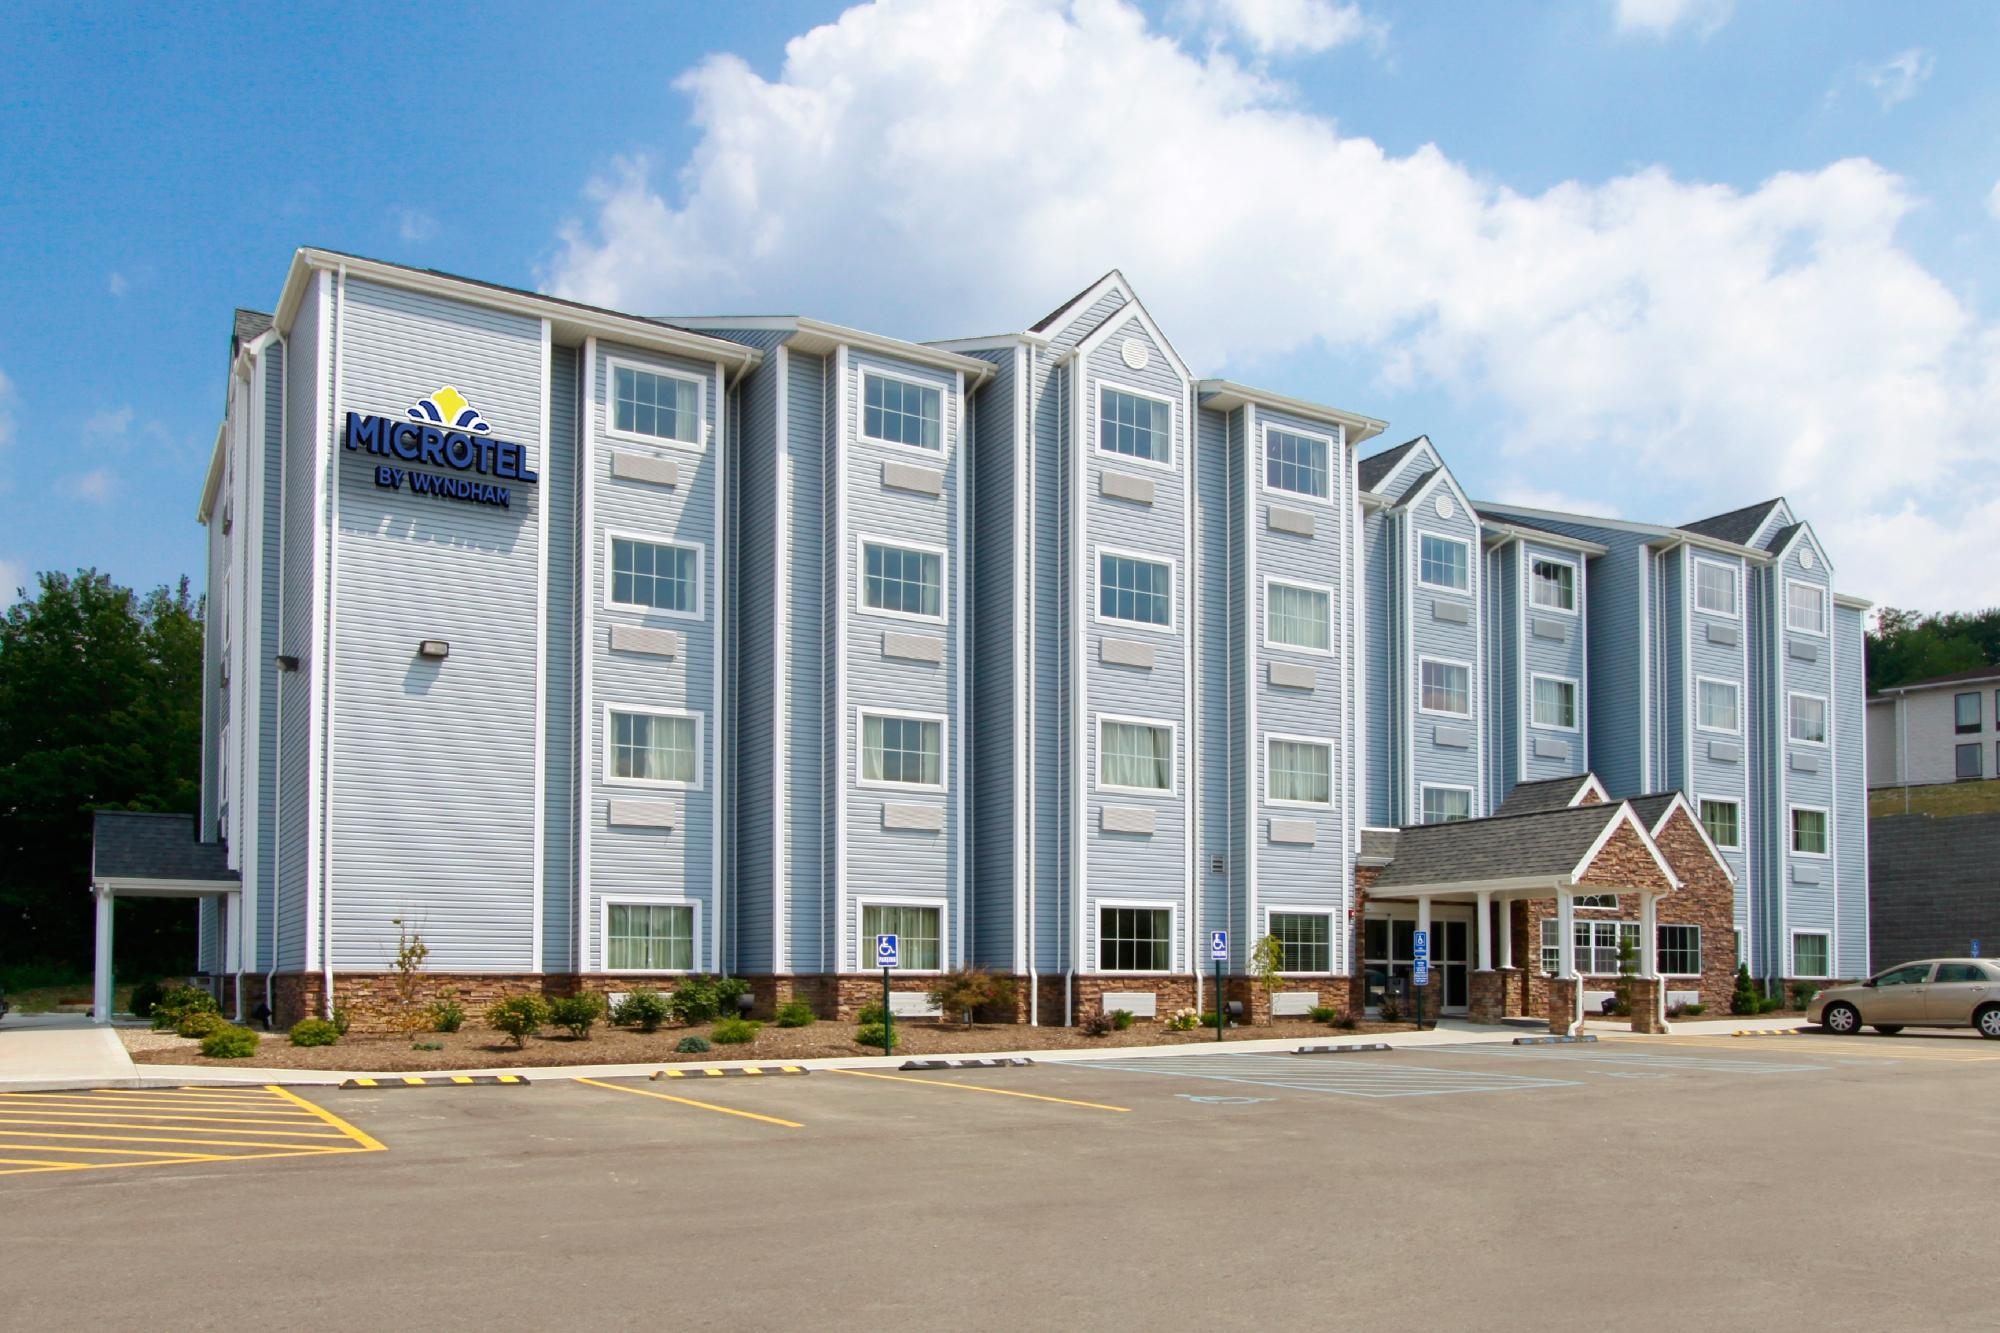 Microtel Inn & Suites by Wyndham Waynesburg